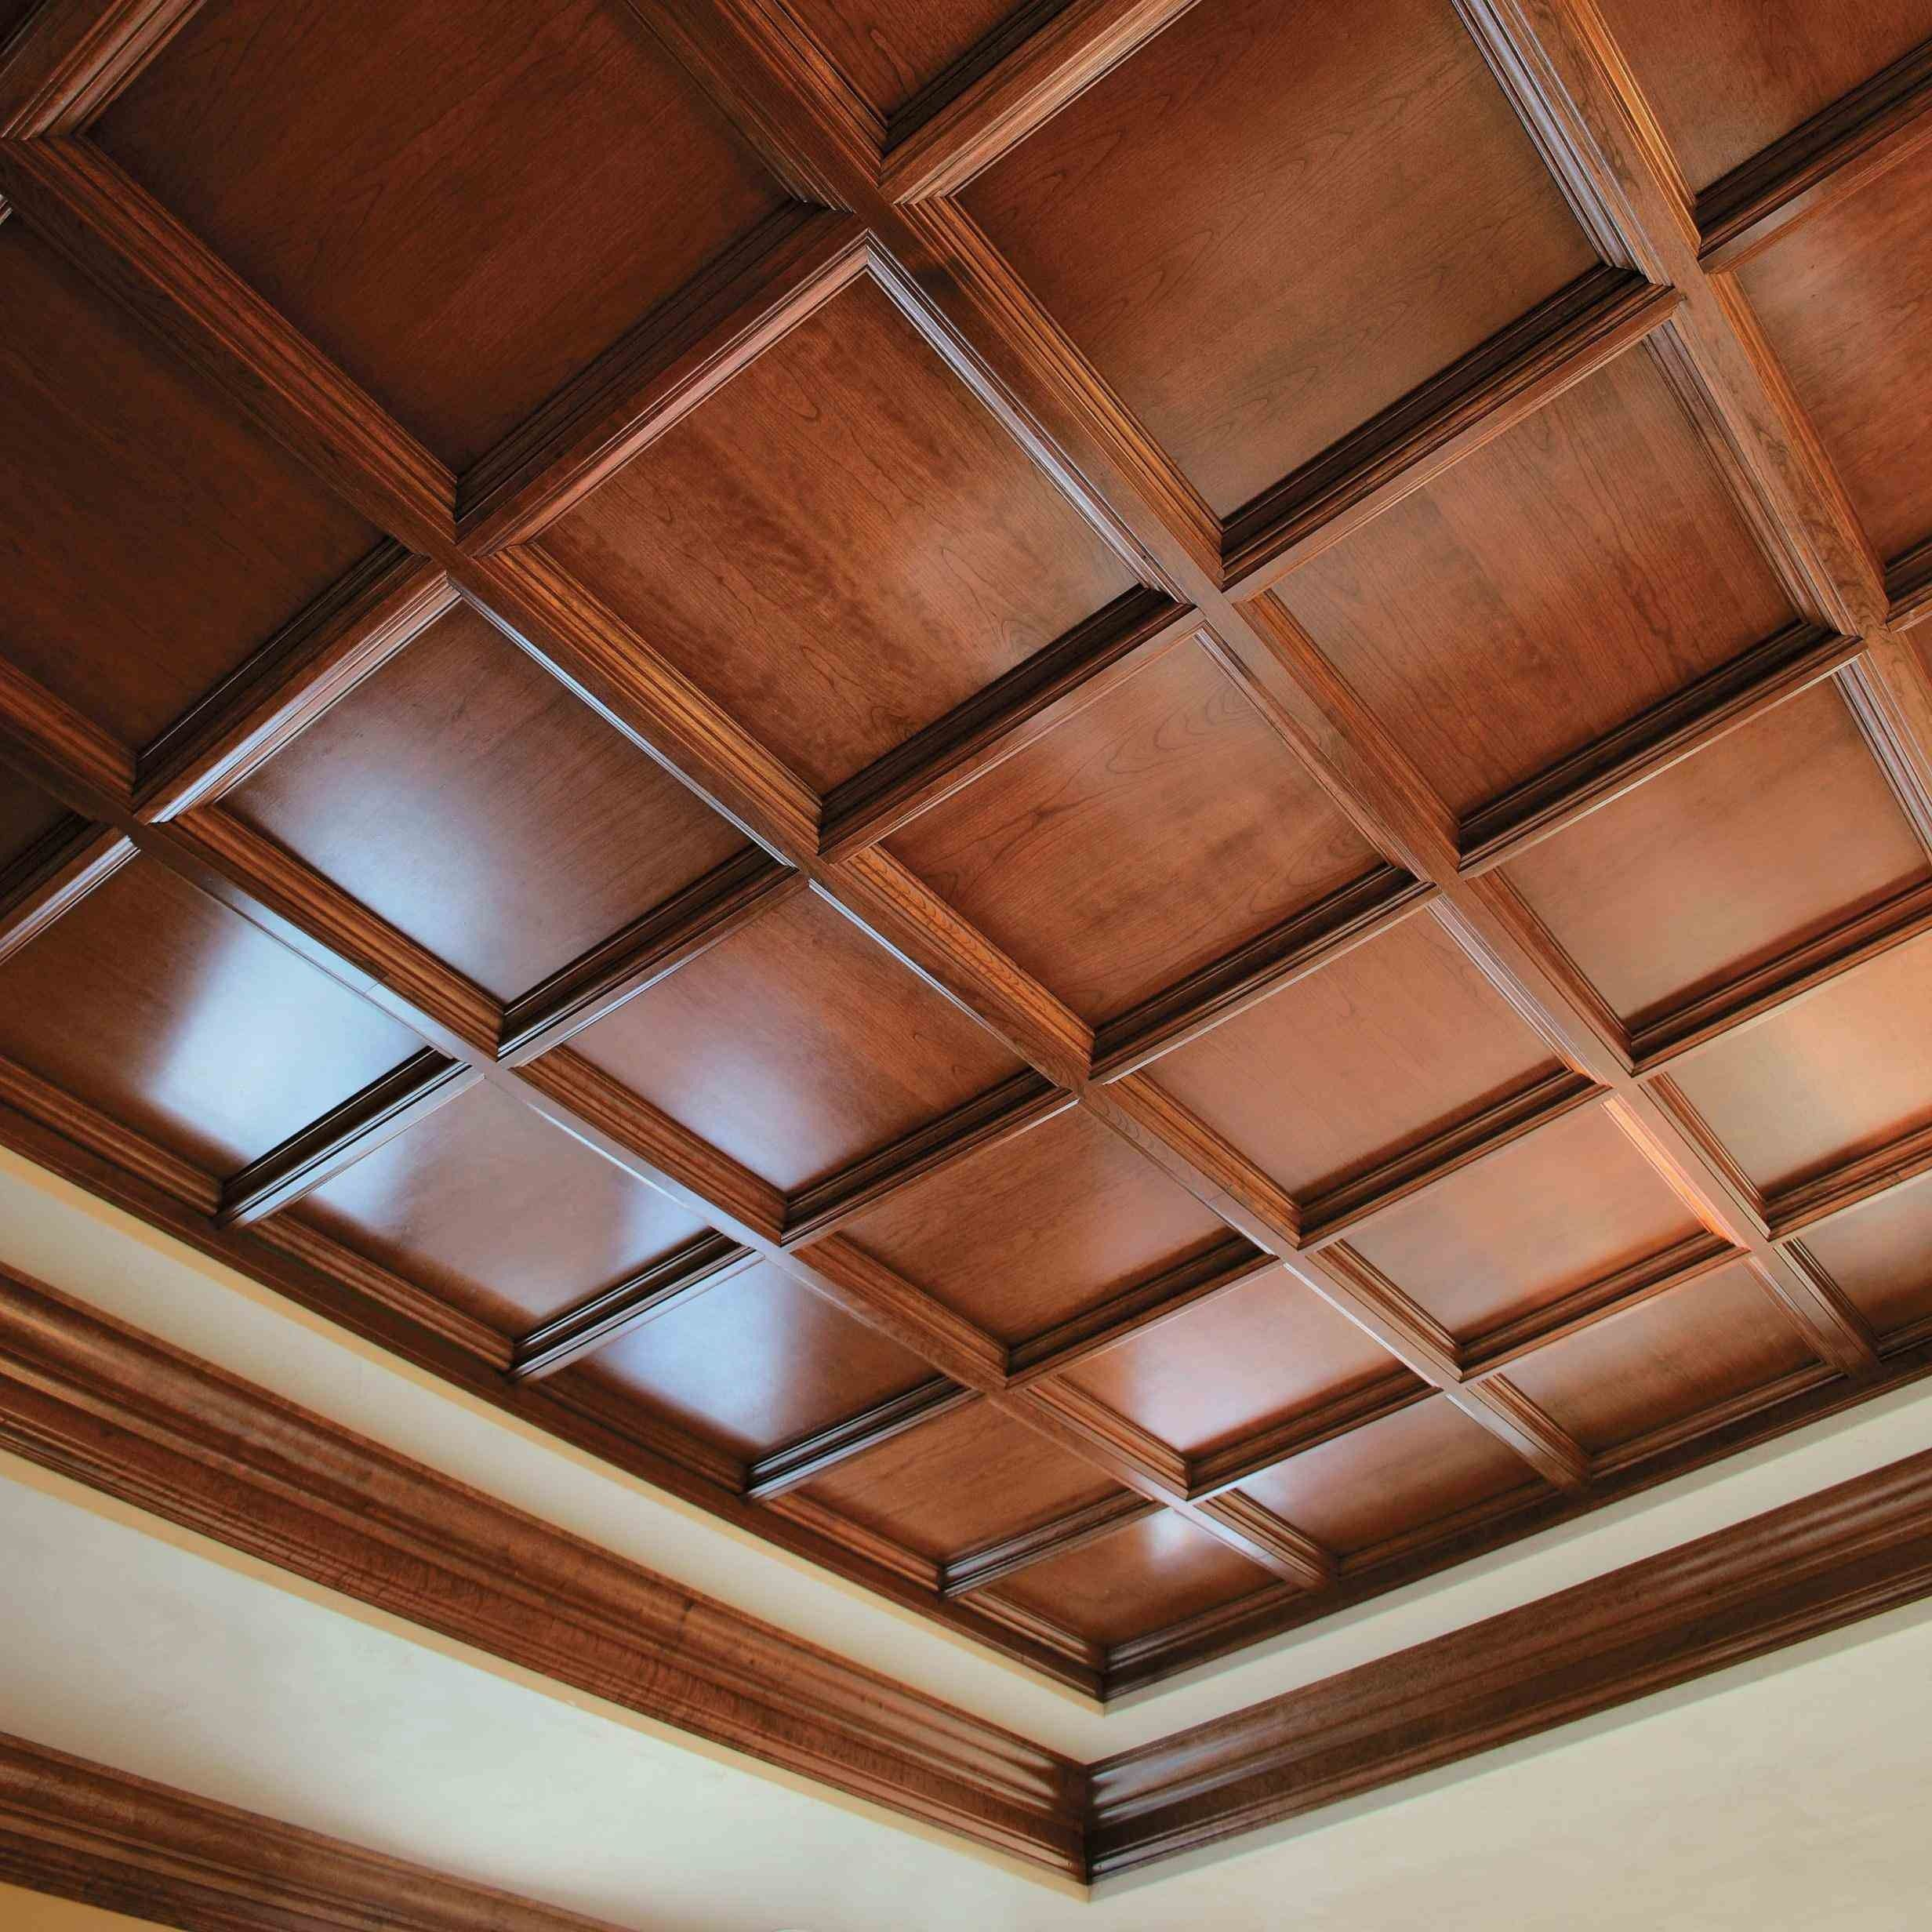 Basement drop ceiling tiles pinteres basement drop ceiling tiles more dailygadgetfo Image collections